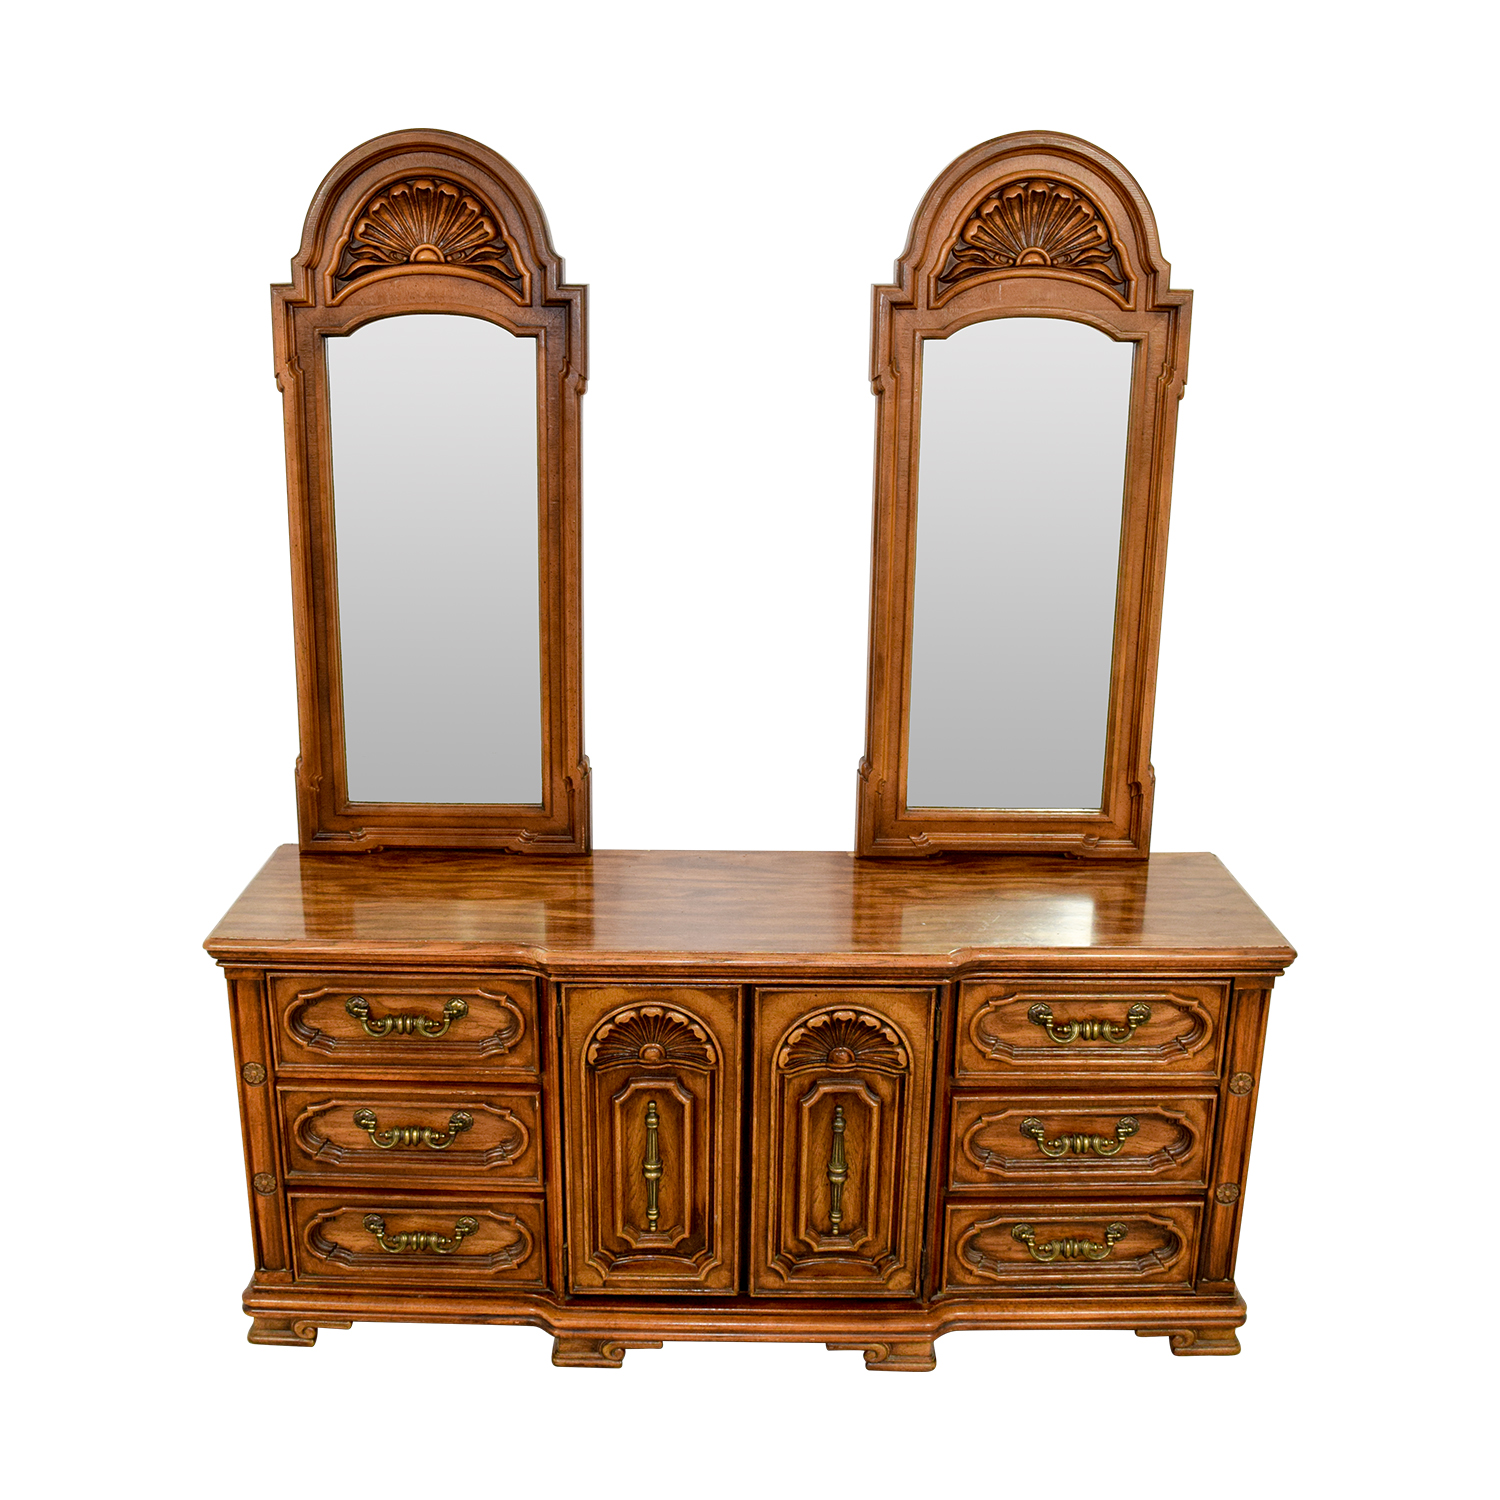 Seamans Seaman's Two Mirror Wood Dresser / Storage